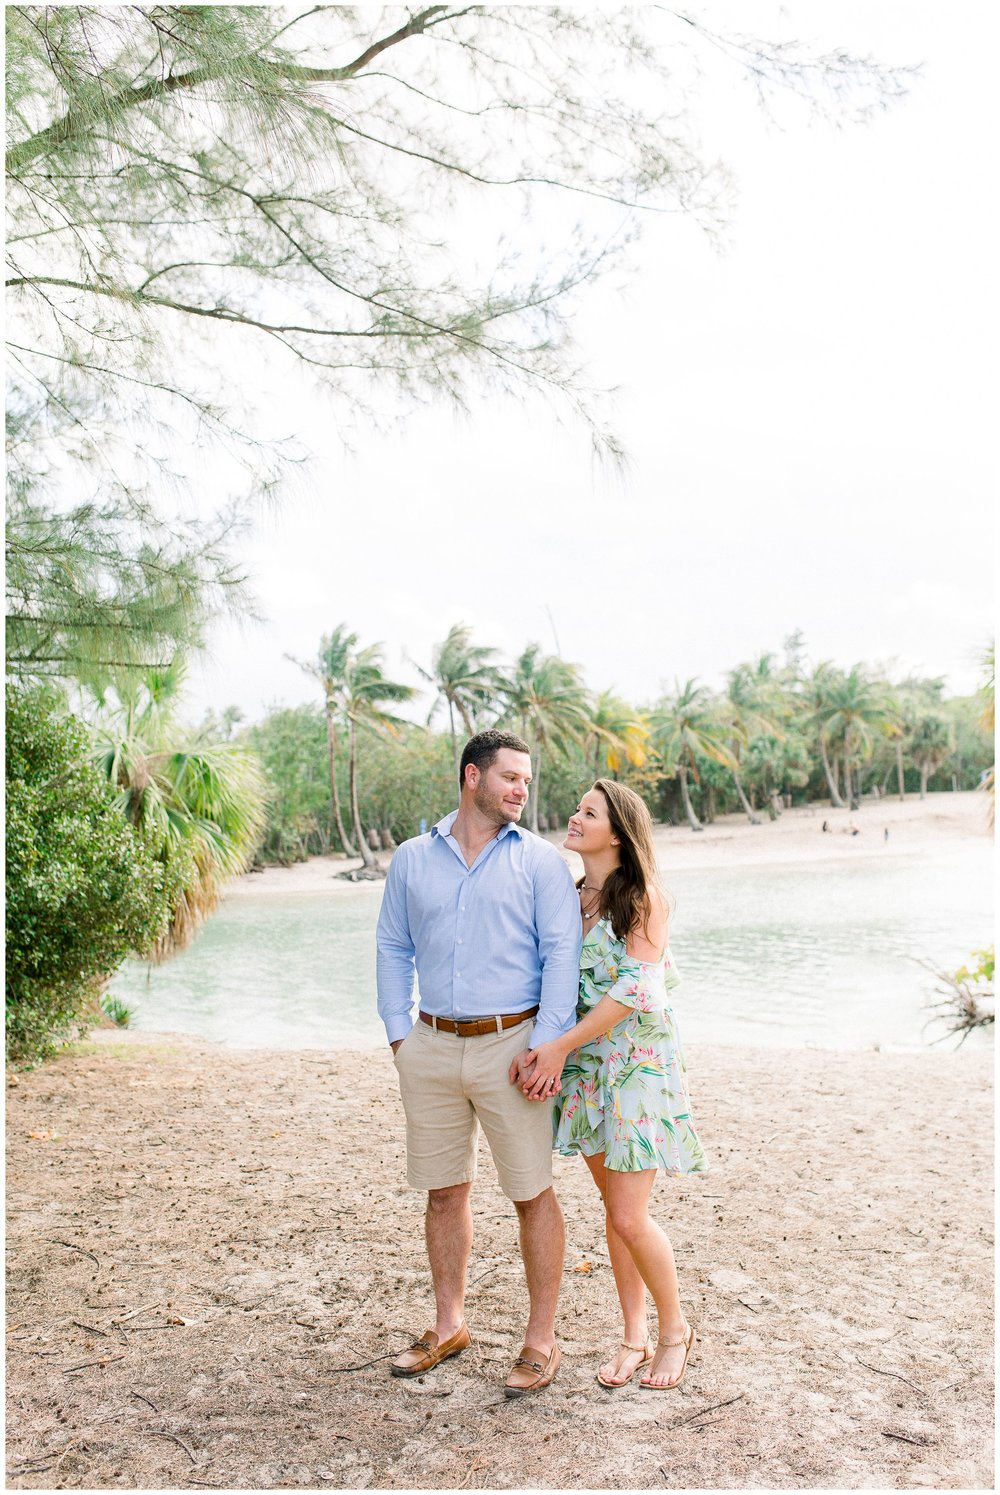 Dubois Park Engagement Photos- South Florida Wedding Photographer- Coastal Engagement Photos- Beach Engagement Photos- Palm Beach Wedding Photographer